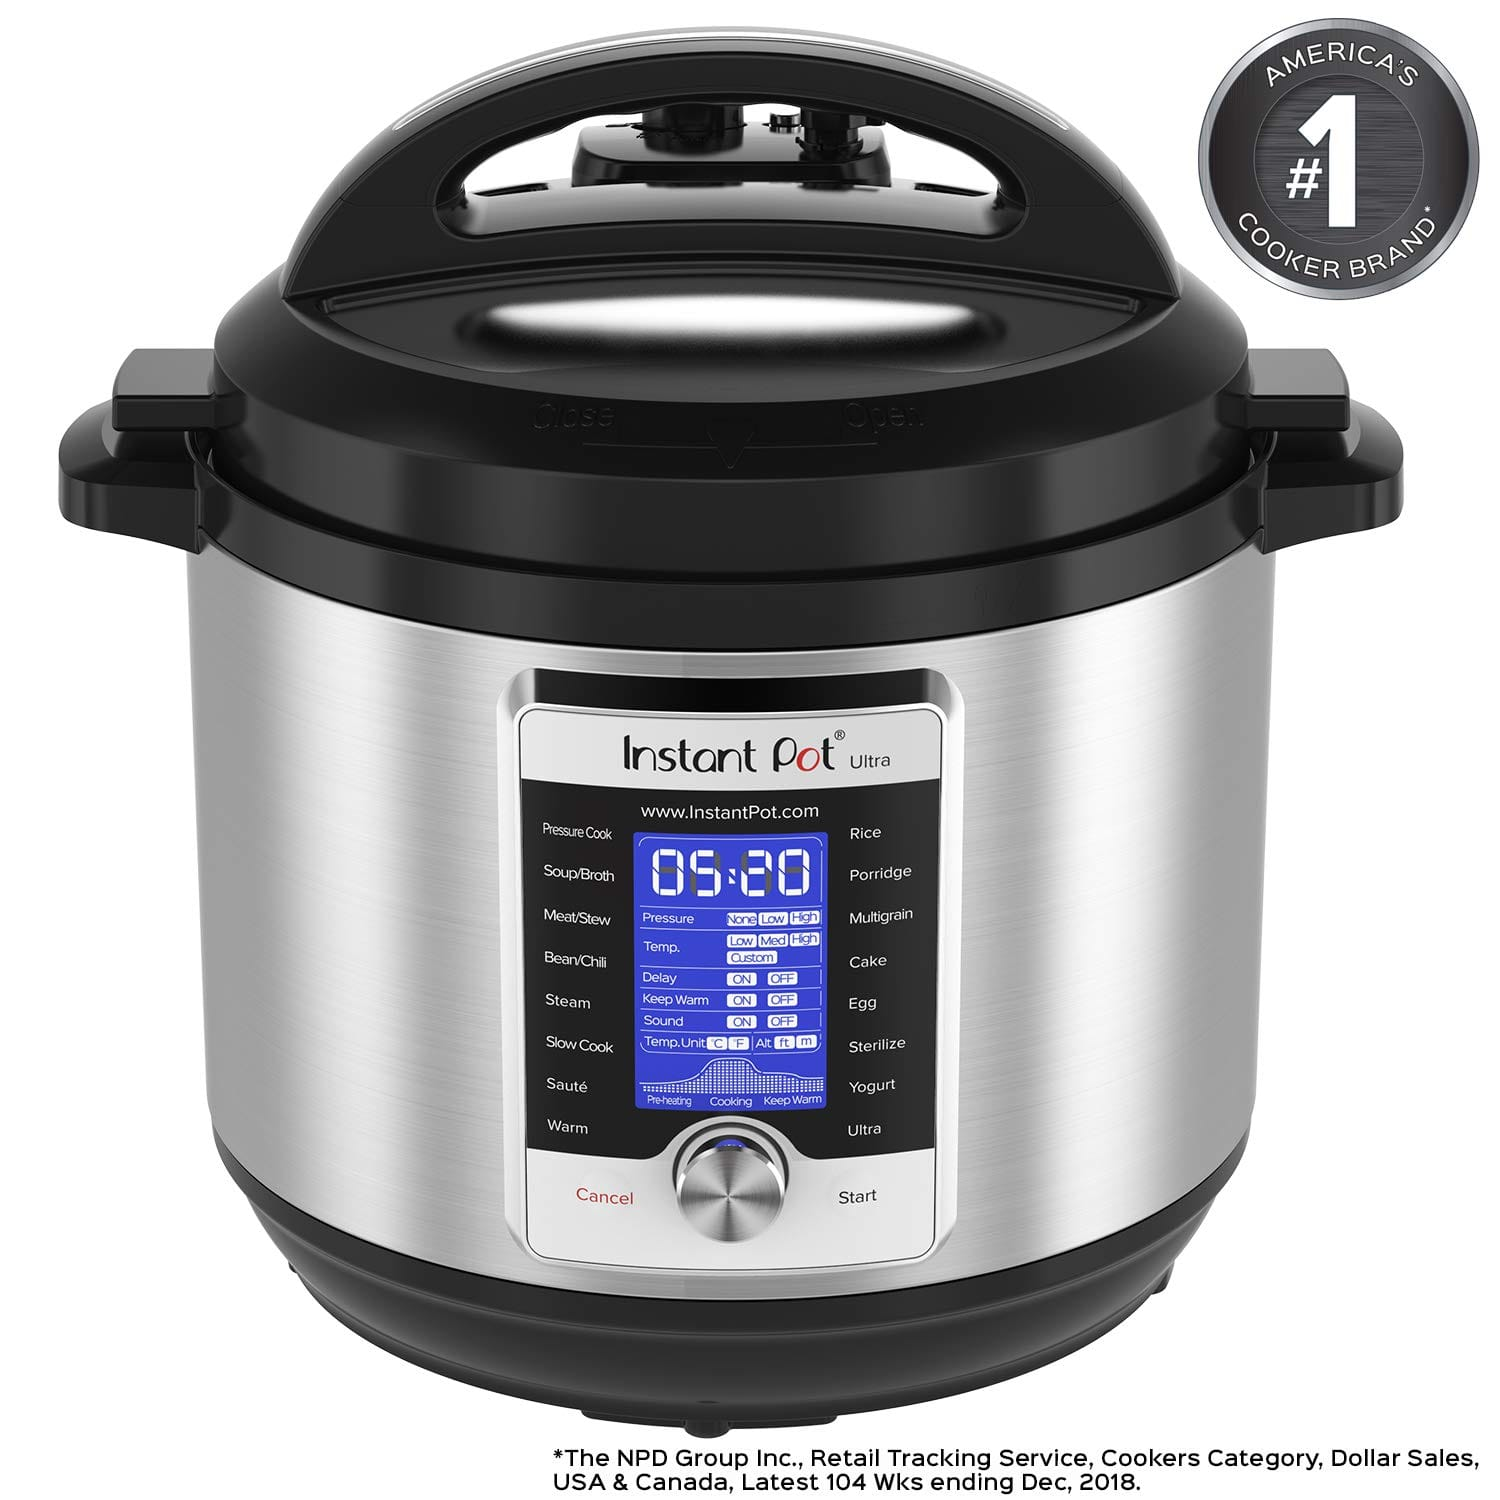 Amazon: Instant Pot Ultra 8 Qt 10-in-1 $110 (Lowest Price on